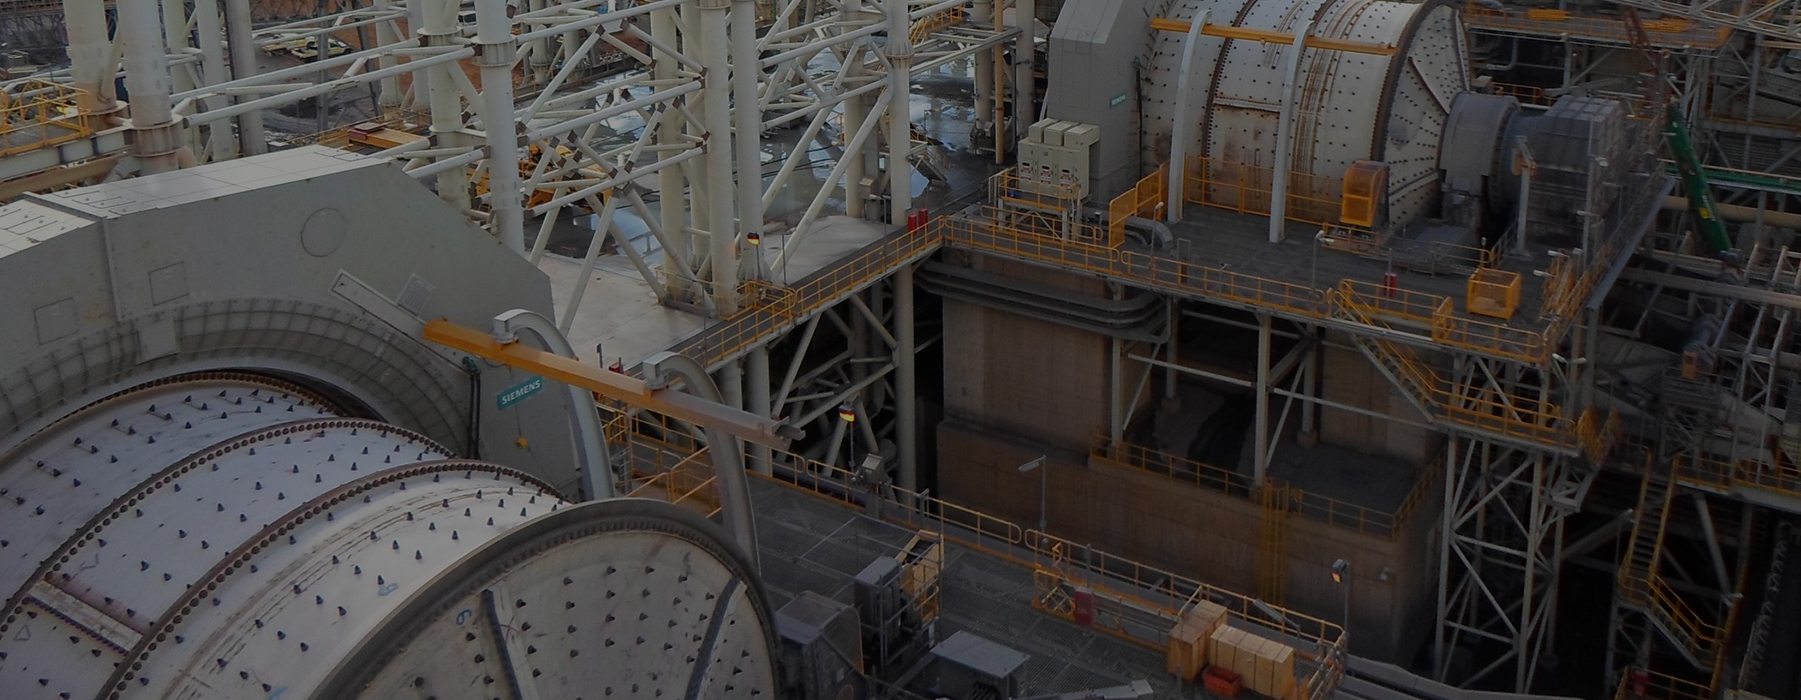 HENGIN'S Mining, Metallurgy, Cement Equipment and Castings and Forgings